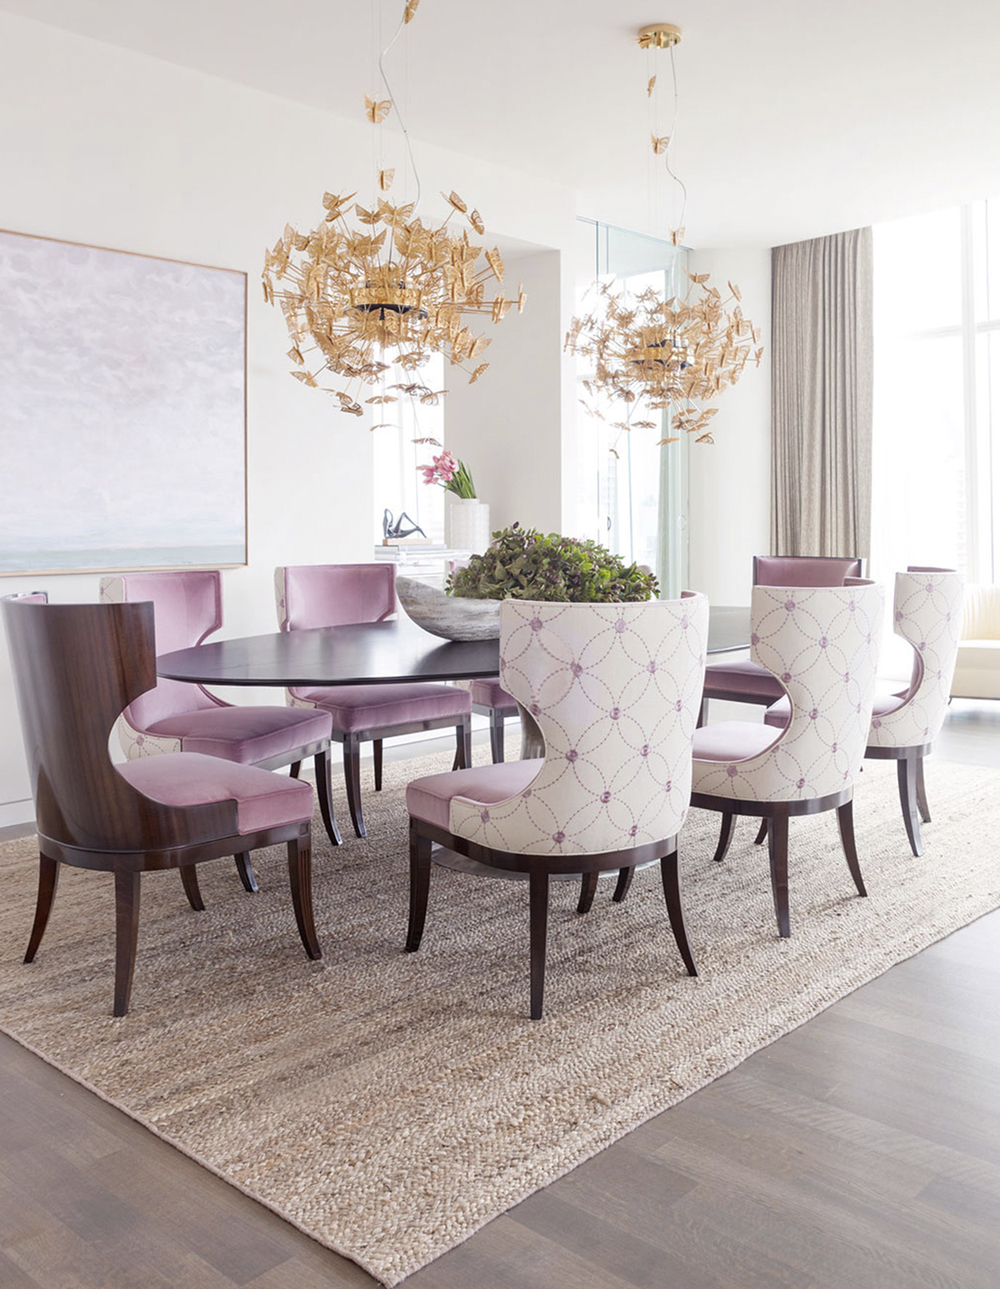 The most beautiful dining rooms of 2016 11 beautiful dining rooms The Most Beautiful Dining Rooms of 2016 The most beautiful dining rooms of 2016 11